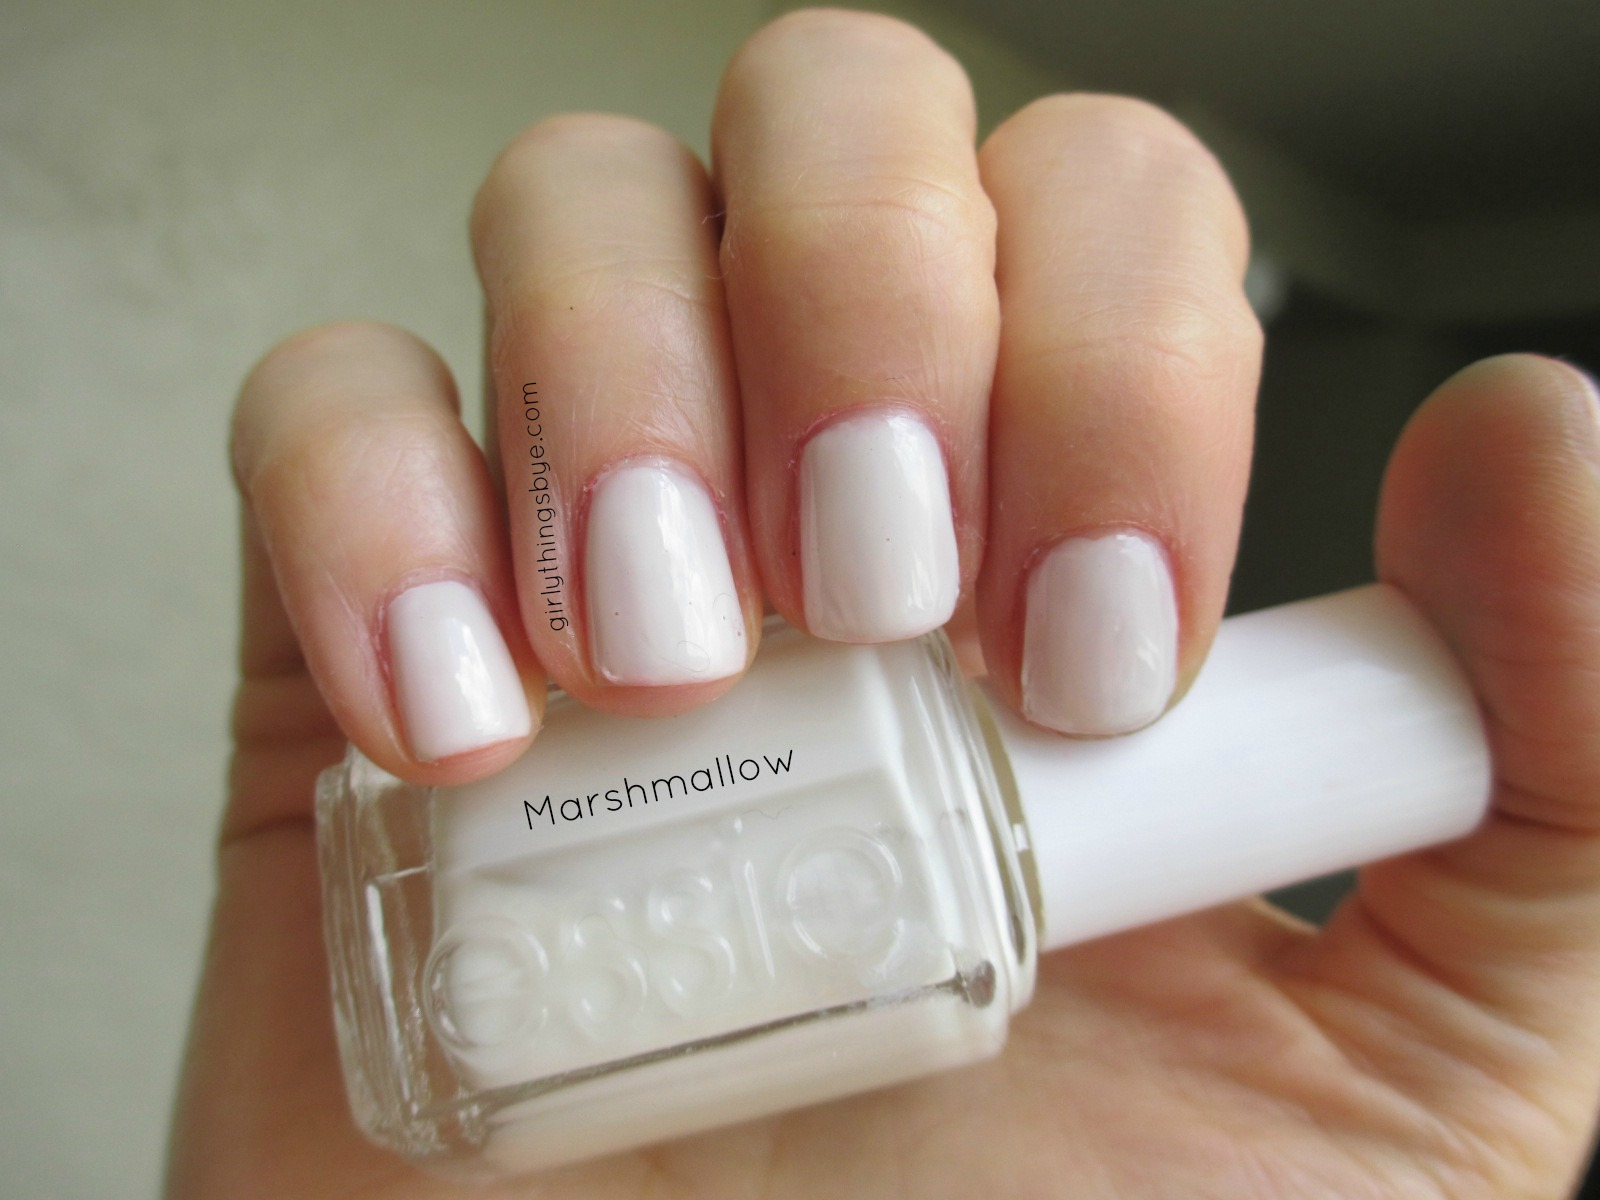 Manicure Monday: Marshmallow & 24/7 | @girlythingsby_e | Beauty Chit ...